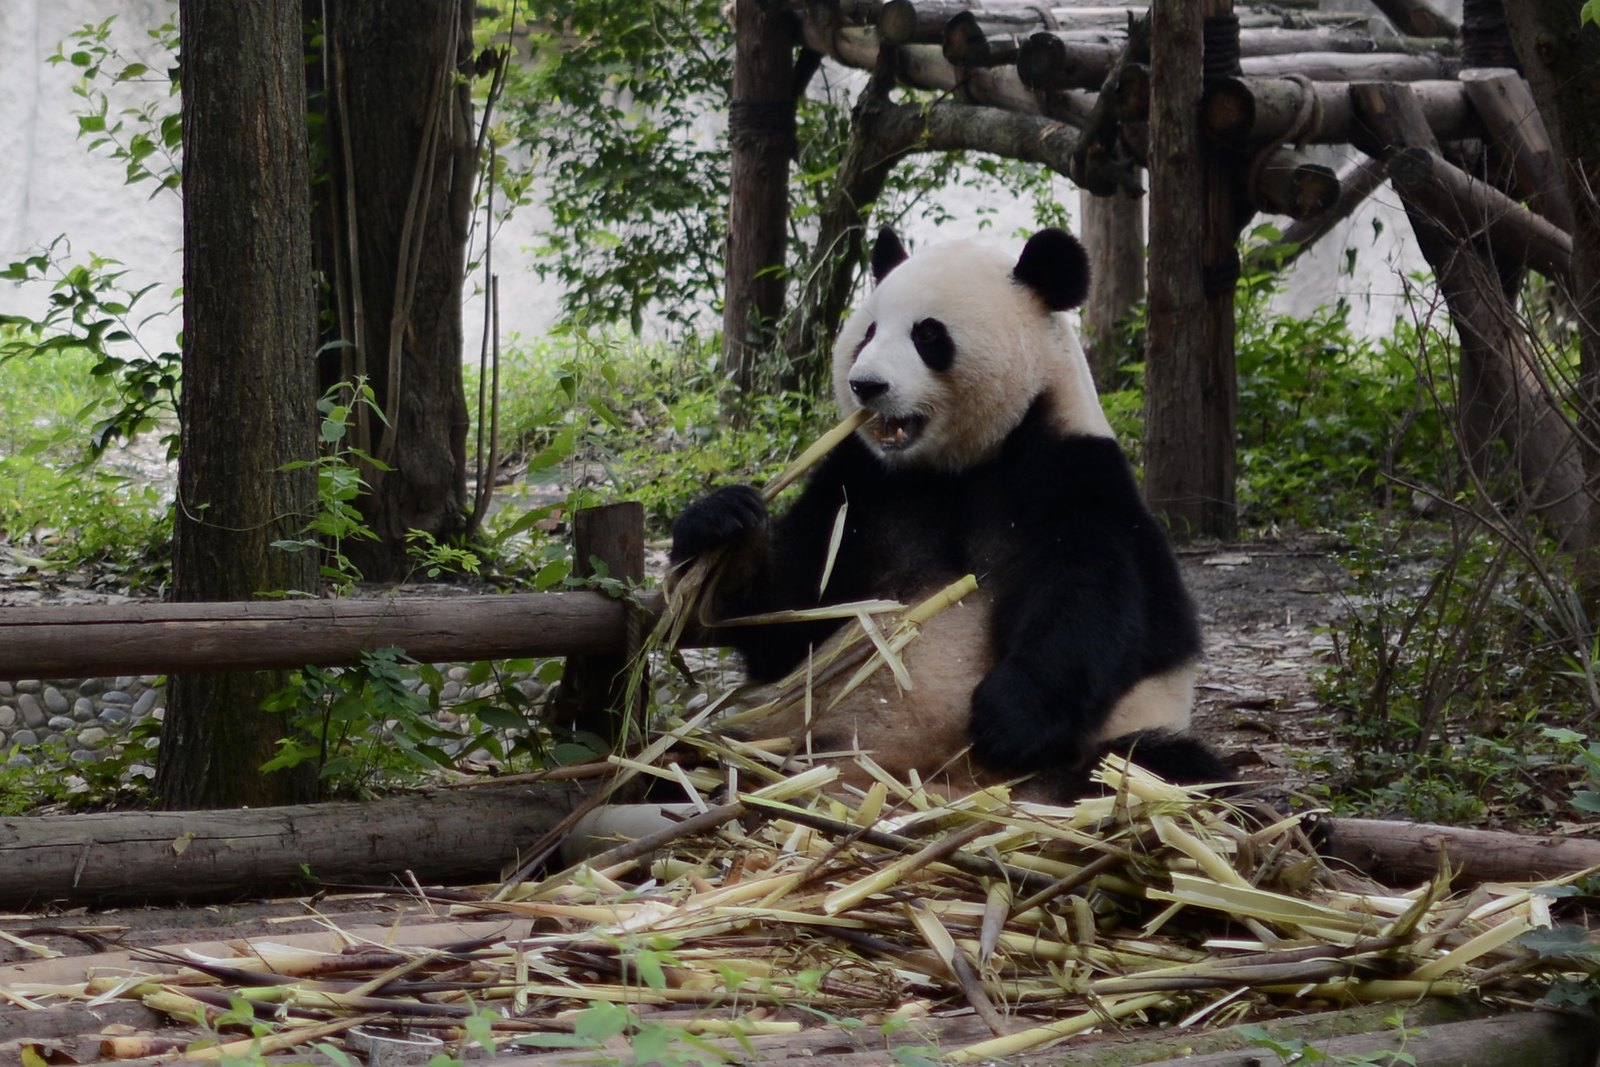 Panda Center in Chengdu, China